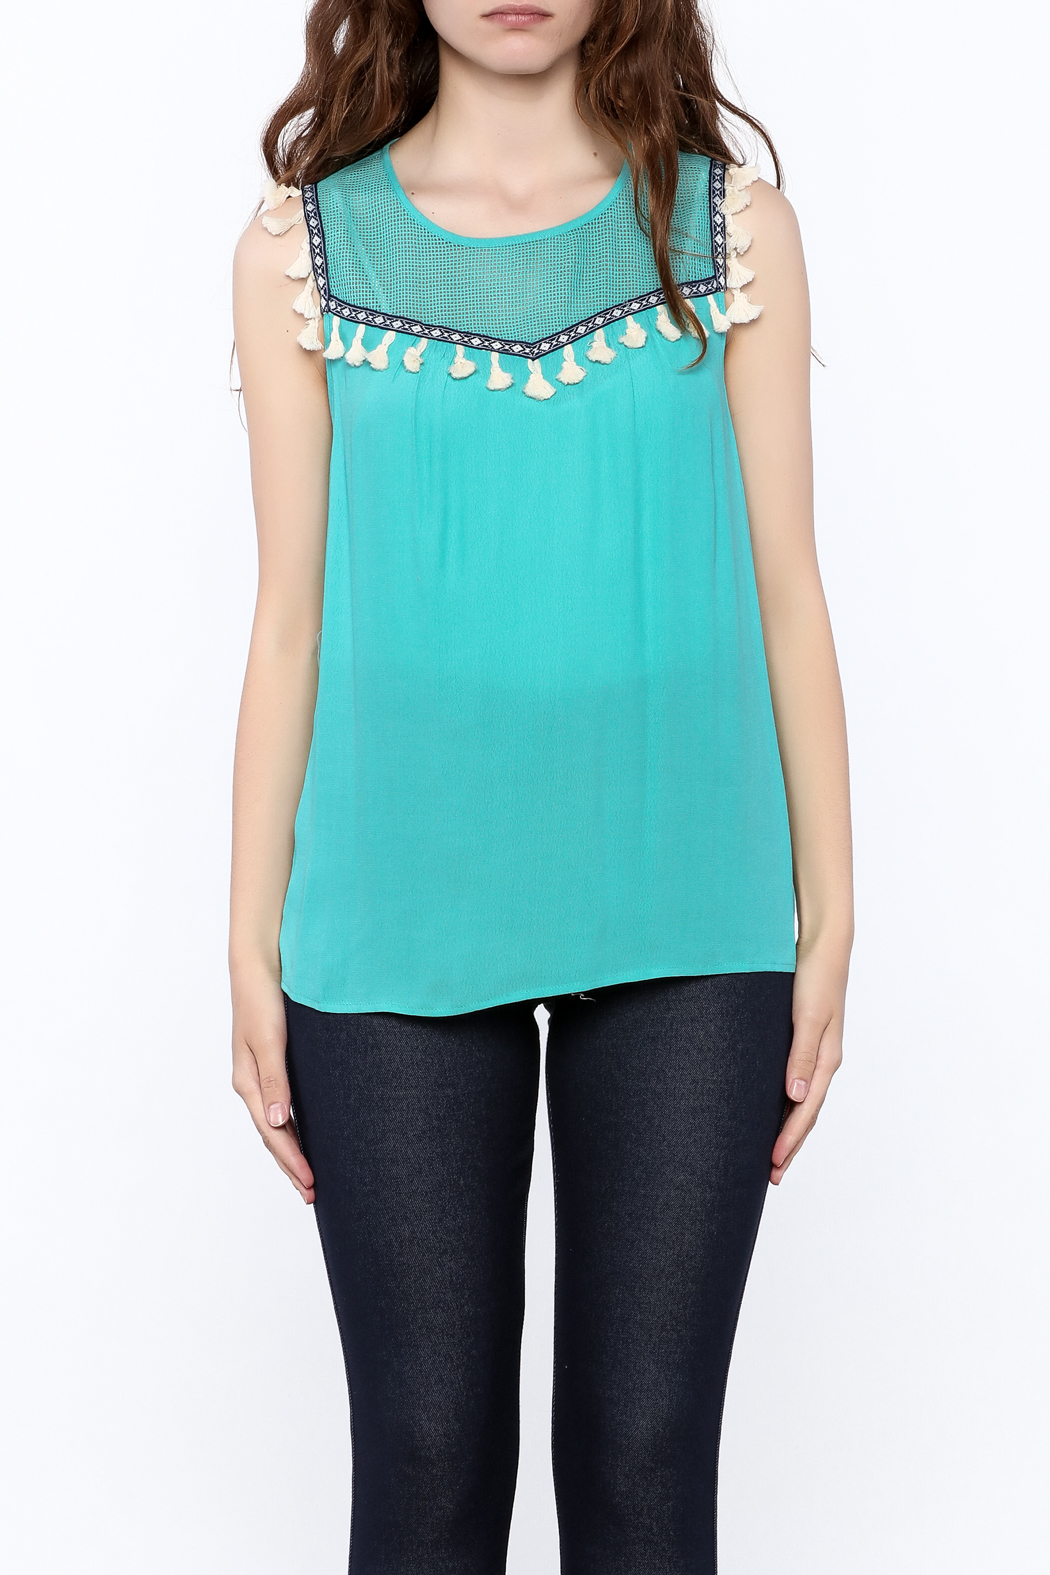 THML Clothing Aqua Tassel Top - Side Cropped Image